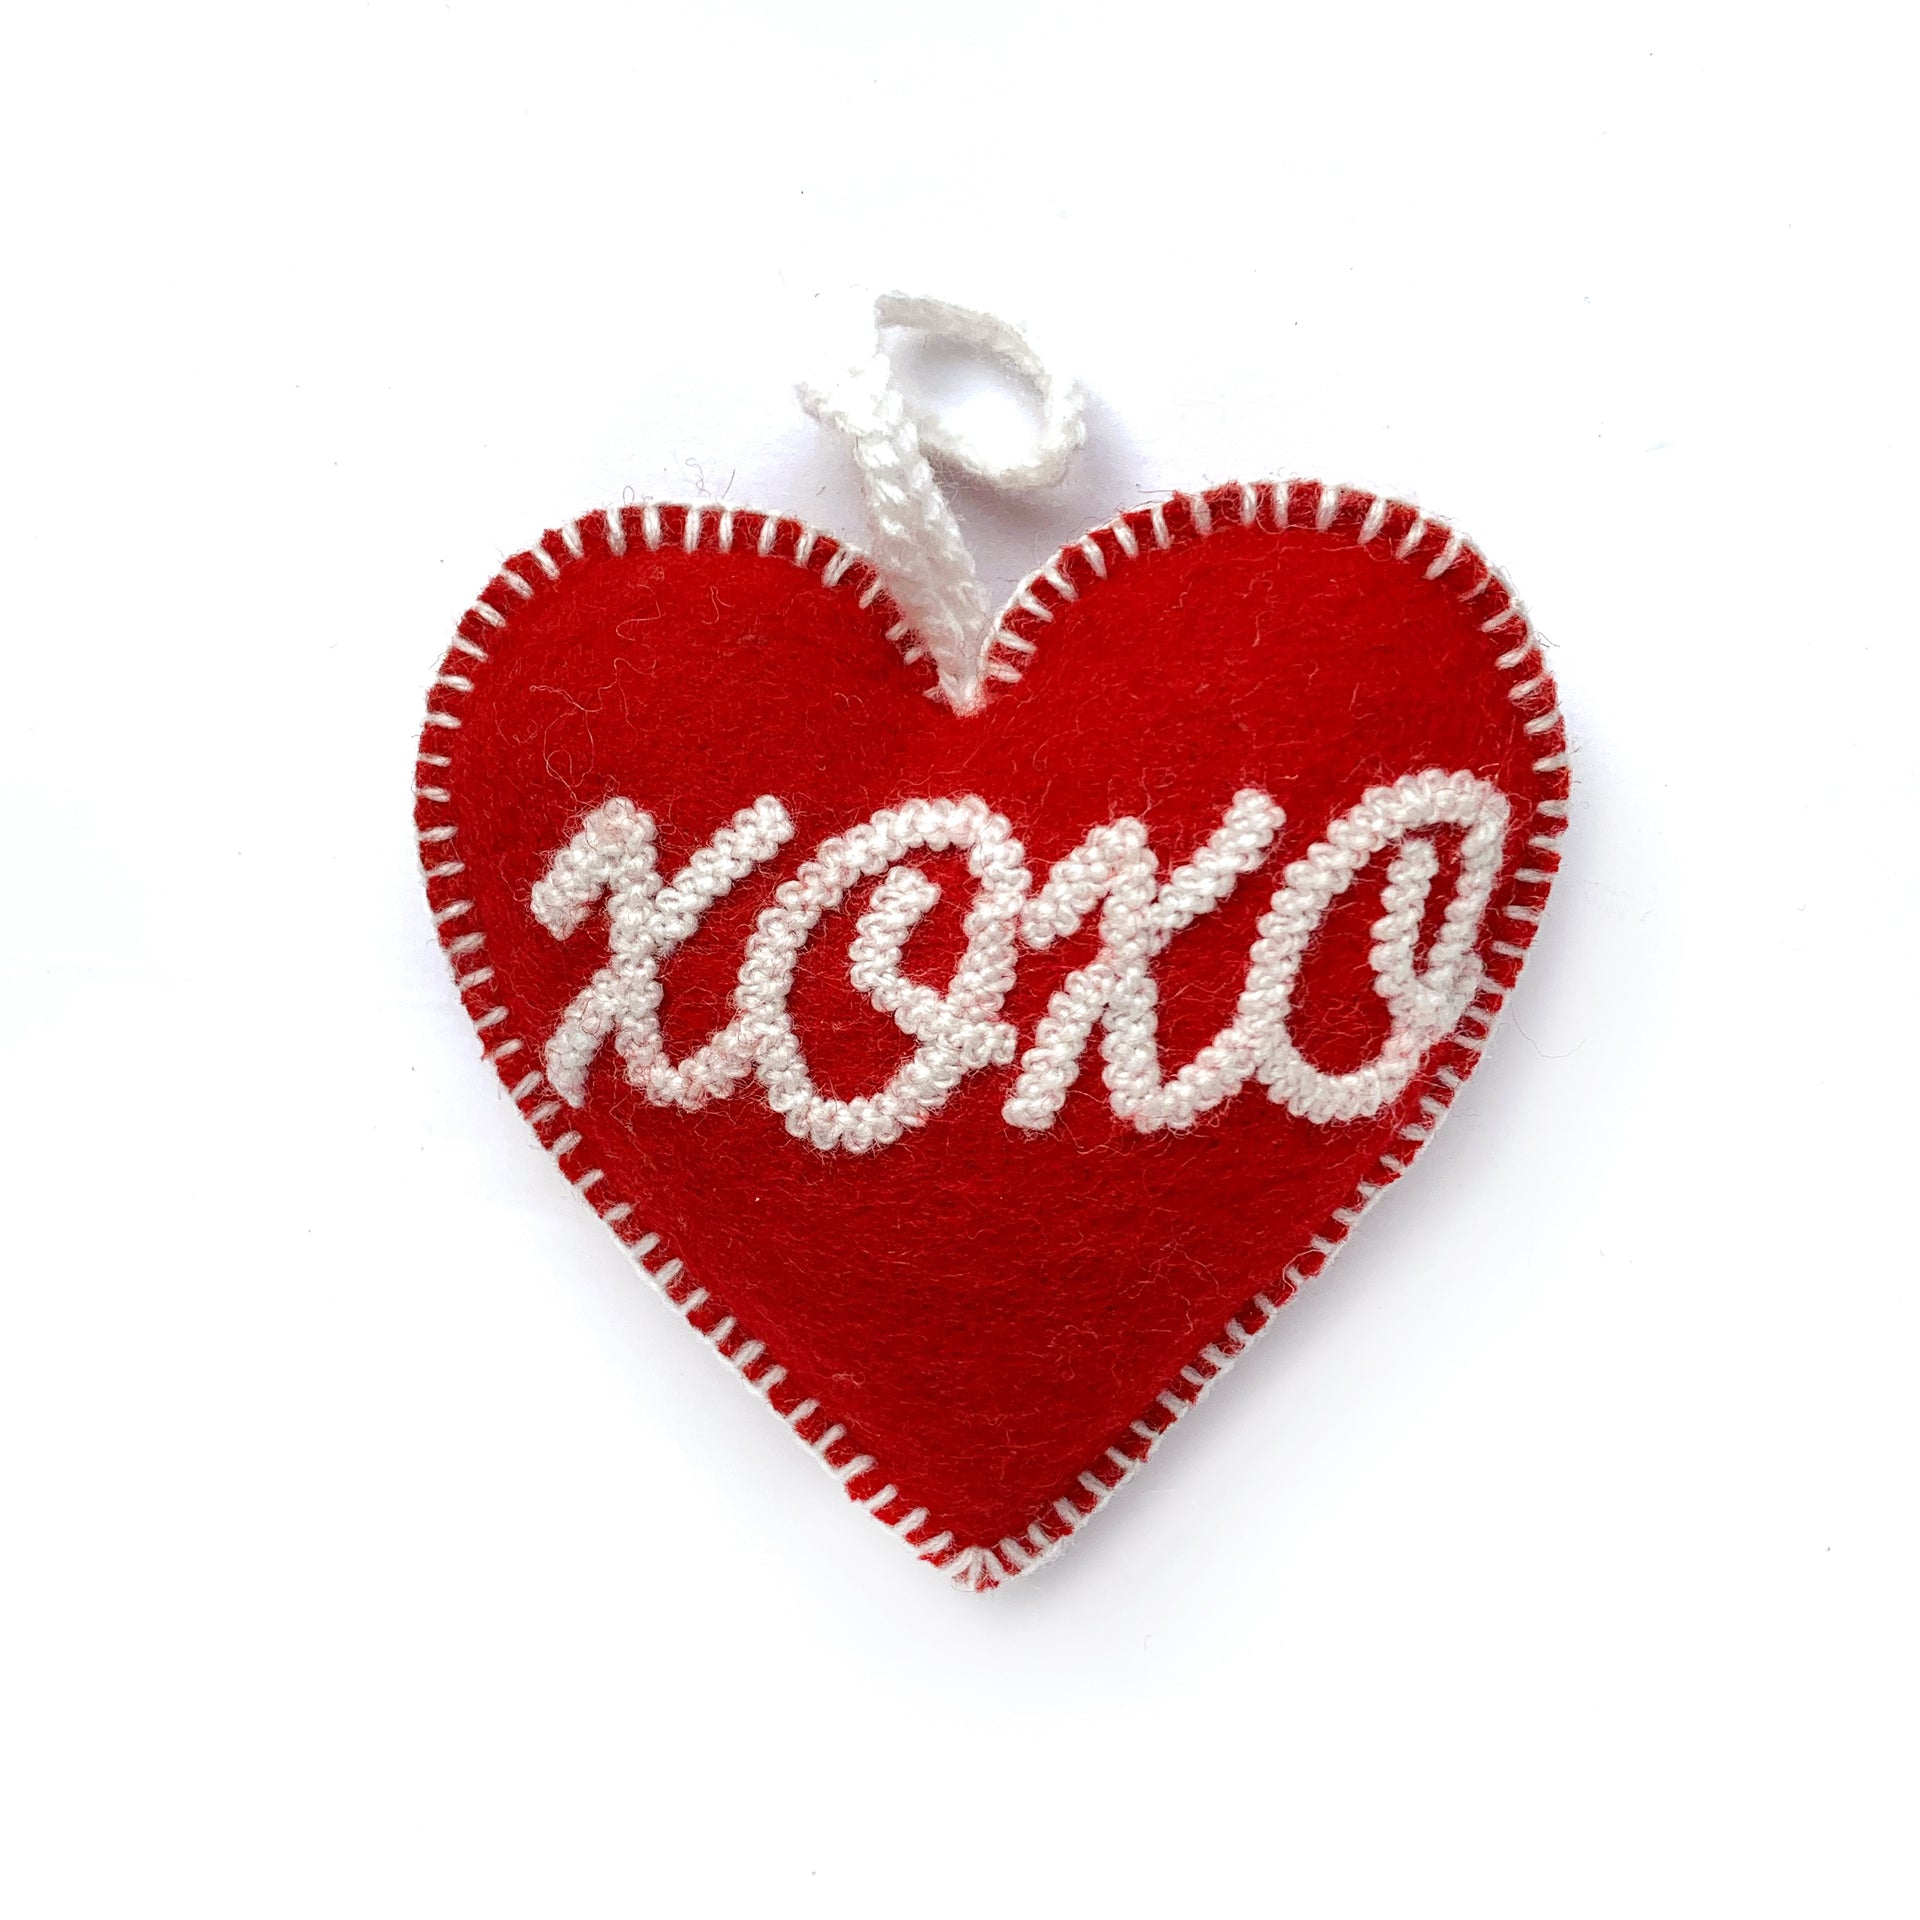 XOXO Heart Valentine's Ornament, Embroidered Wool